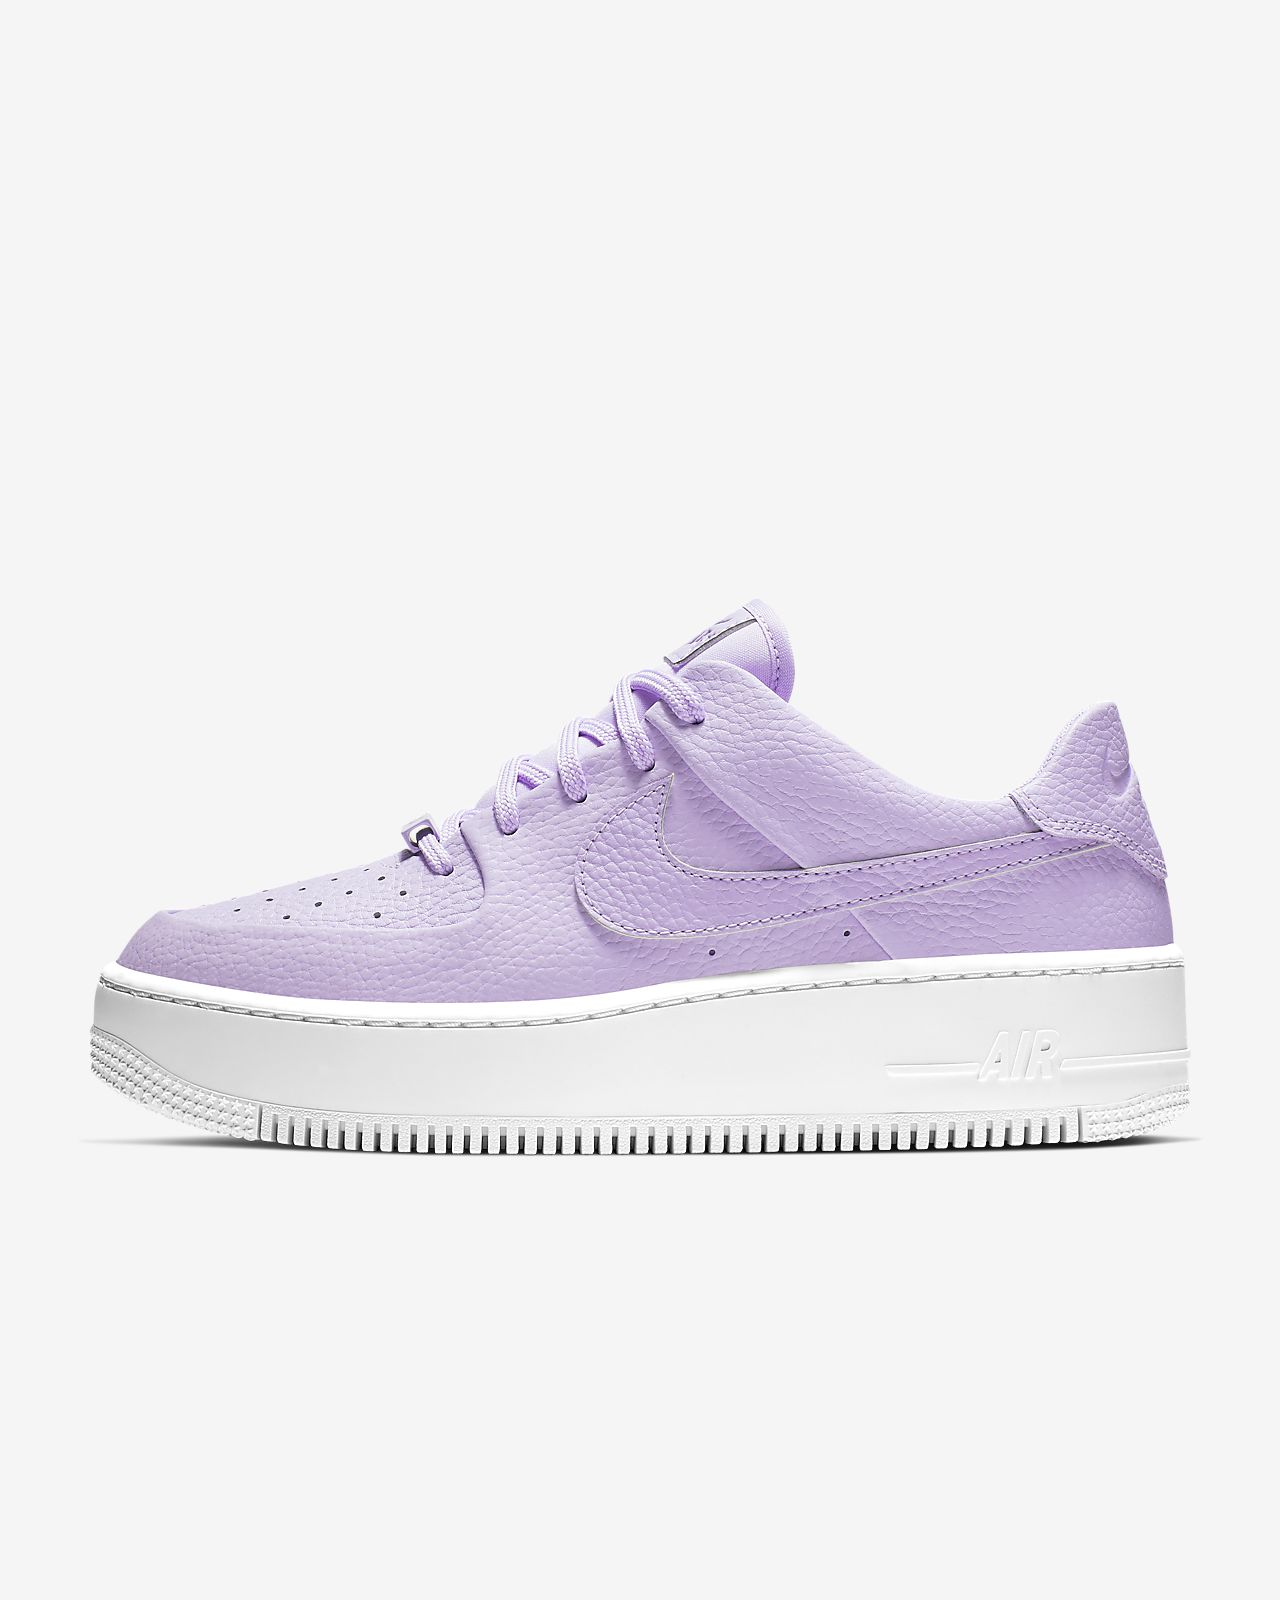 official photos 4043b 98e12 ... Chaussure Nike Air Force 1 Sage Low pour Femme